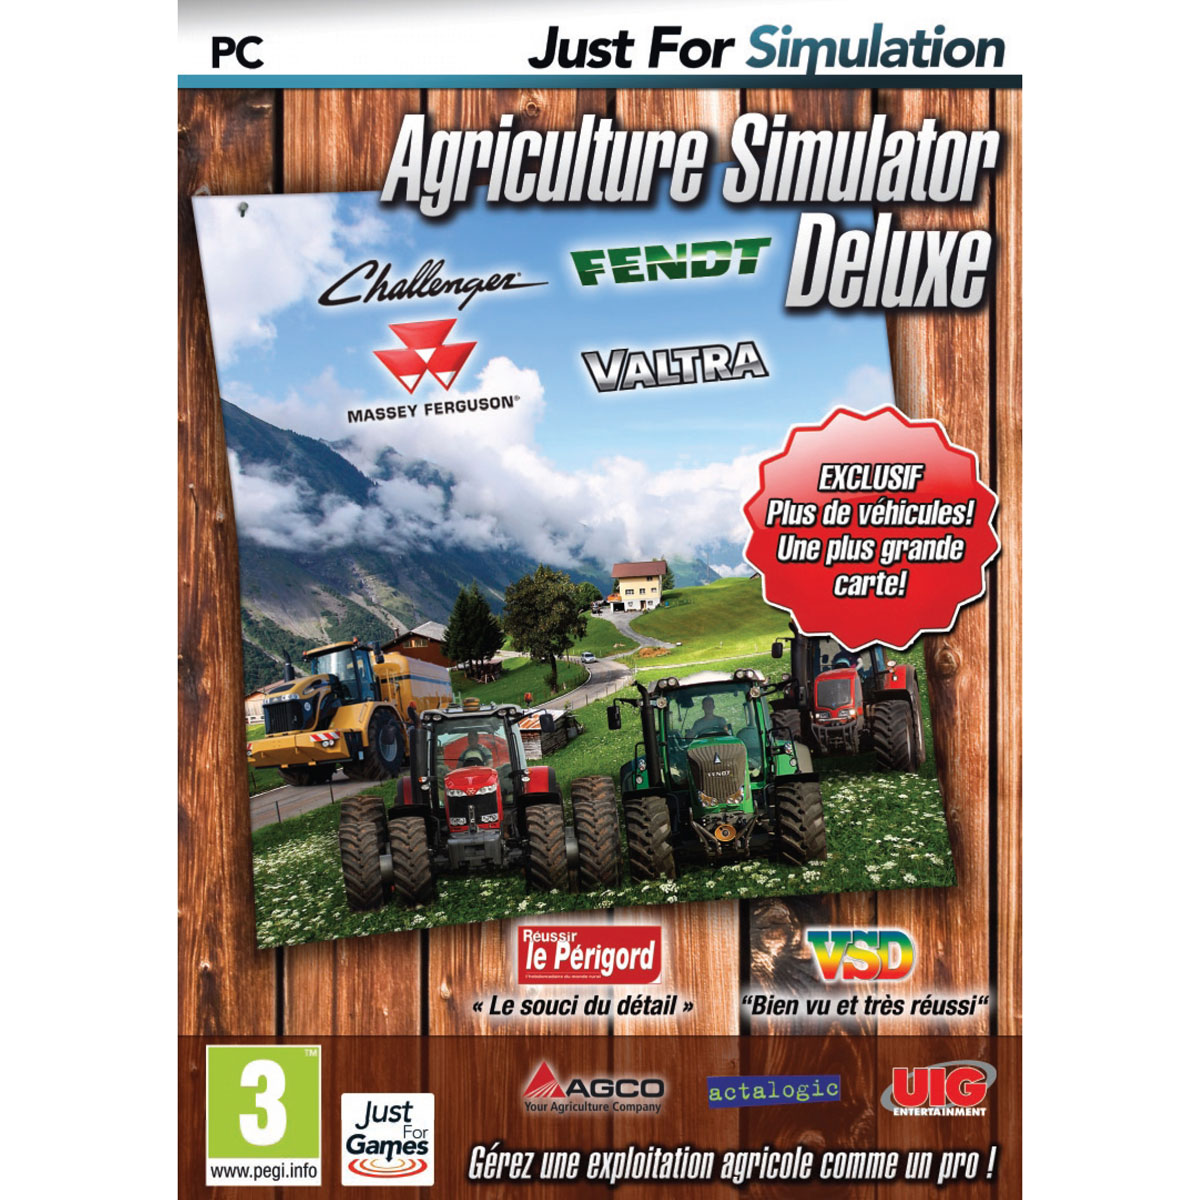 agriculture simulator deluxe pc jeux pc just for games sur. Black Bedroom Furniture Sets. Home Design Ideas